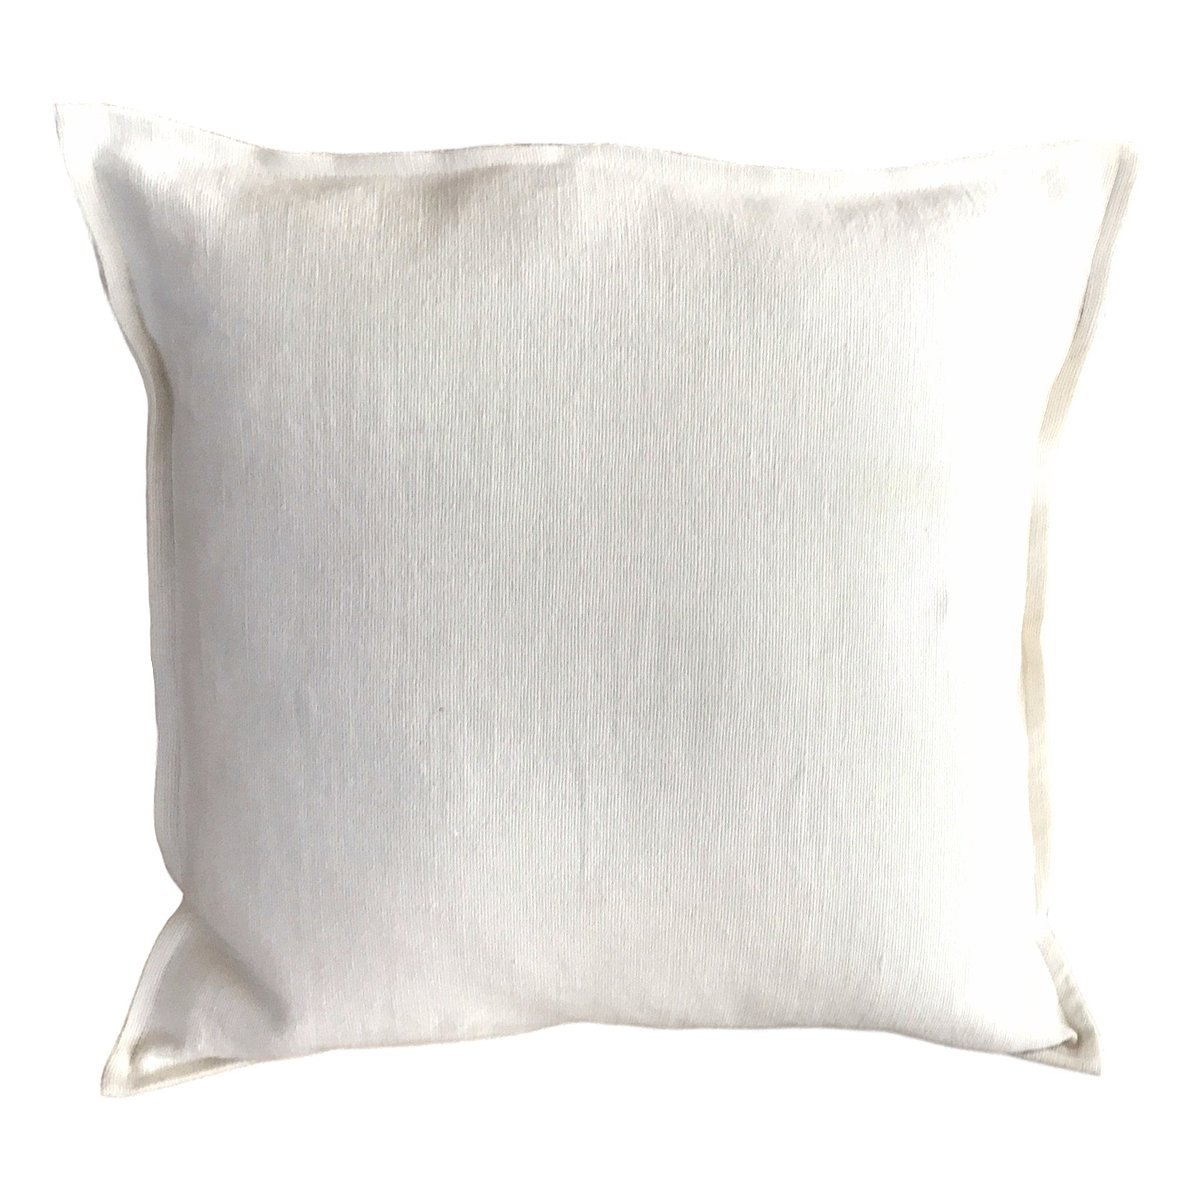 Pillow Soft Washed Linen Off White 20 x 20